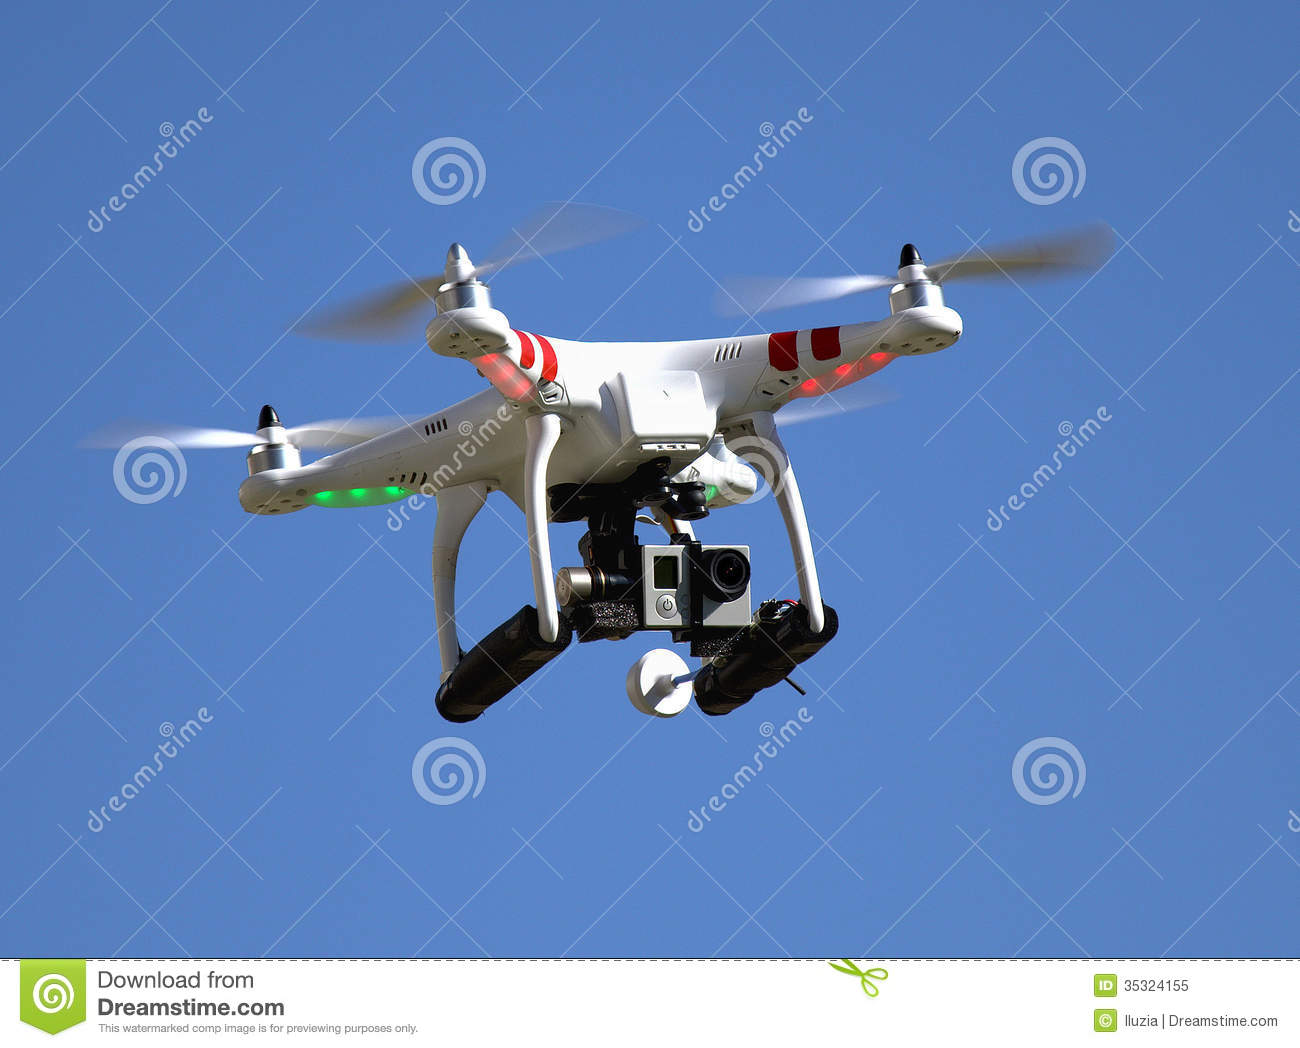 remote control helicopter camera with Royalty Free Stock Photo Camera Aerial Photography Sky Video Photo Productions Image35324155 on Manfrotto D1 Drone Backpack besides GYROMetalNanoSpyCopterCamera35CHElectricIRRTFRCHelicopter furthermore Royalty Free Stock Photo Camera Aerial Photography Sky Video Photo Productions Image35324155 further Un Drone Paralyse Le Trafic Aerien Dubai moreover Hd25 Mini Bullet Camera.